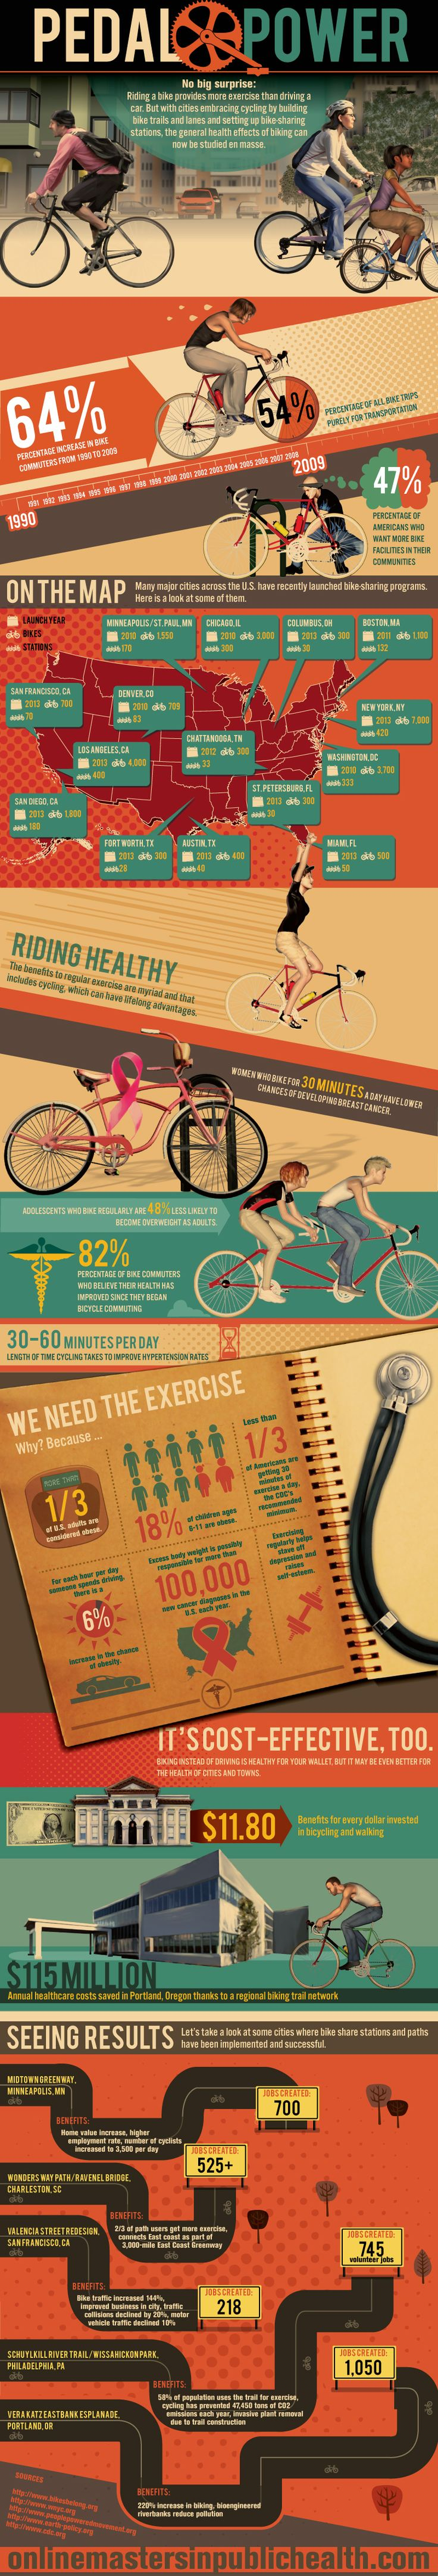 Bike-related infographic supplied by Online Masters in Public Health. Whether it's to improve health or save money, people seem to be hopping on their bikes more than ever. And cities and states are working to accommodate these increased demands for bicycle facilities. As the Infographic shows, one initiative experiencing great success throughout the U.S. is bike sharing.